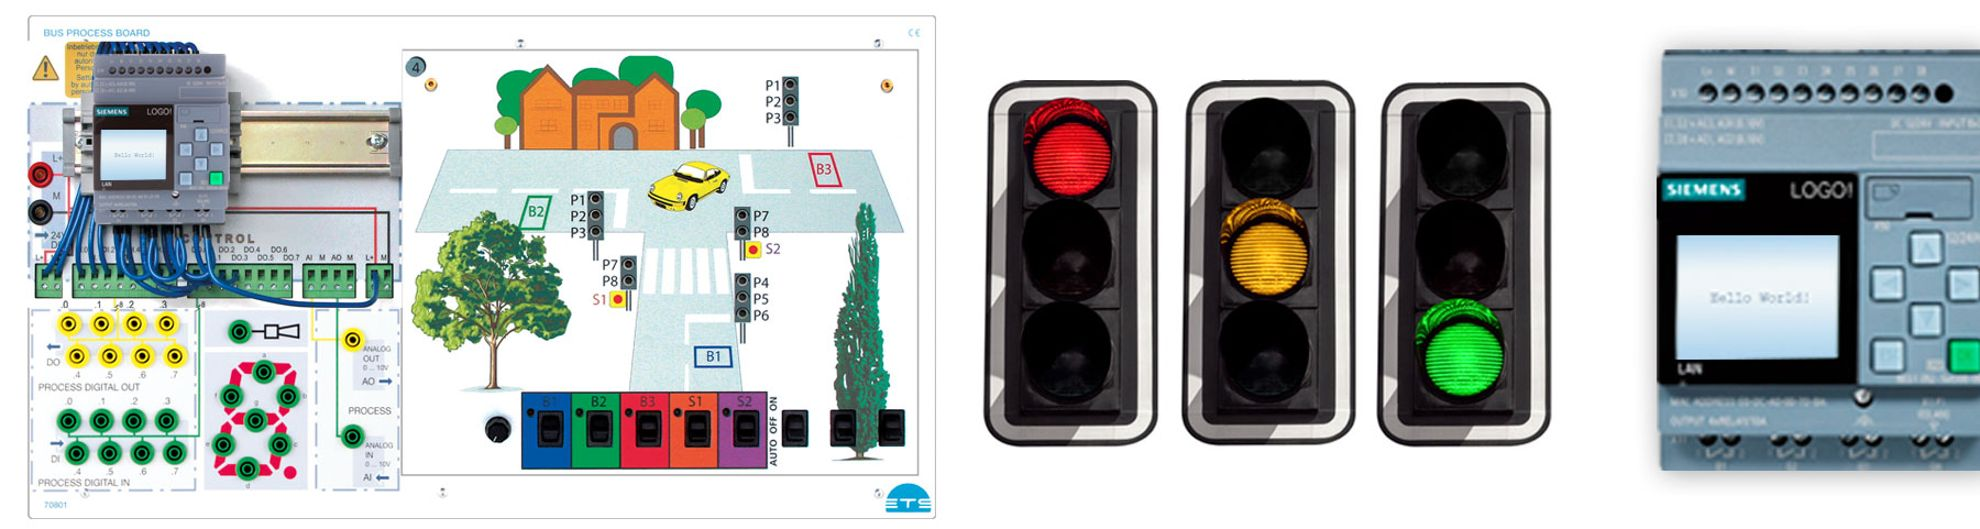 Plant Simulation - Bus Process Board with LOGO!